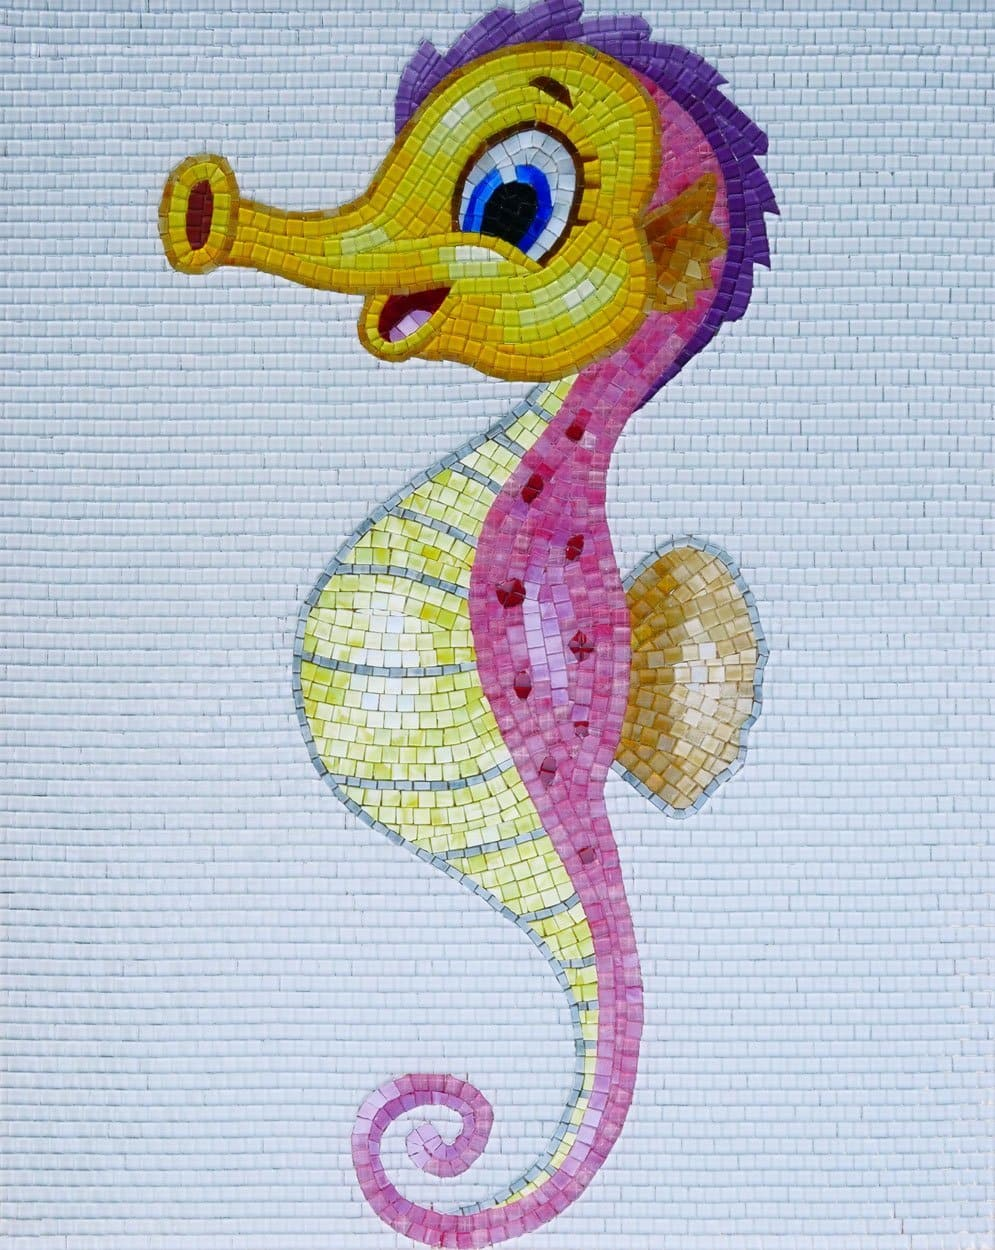 Gregory the Seahorse - Comic Mosaic